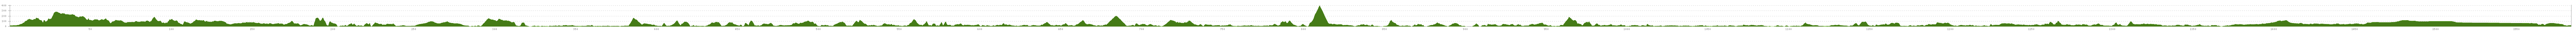 Elevation profile Cycle Tour Southern Ireland Circuit